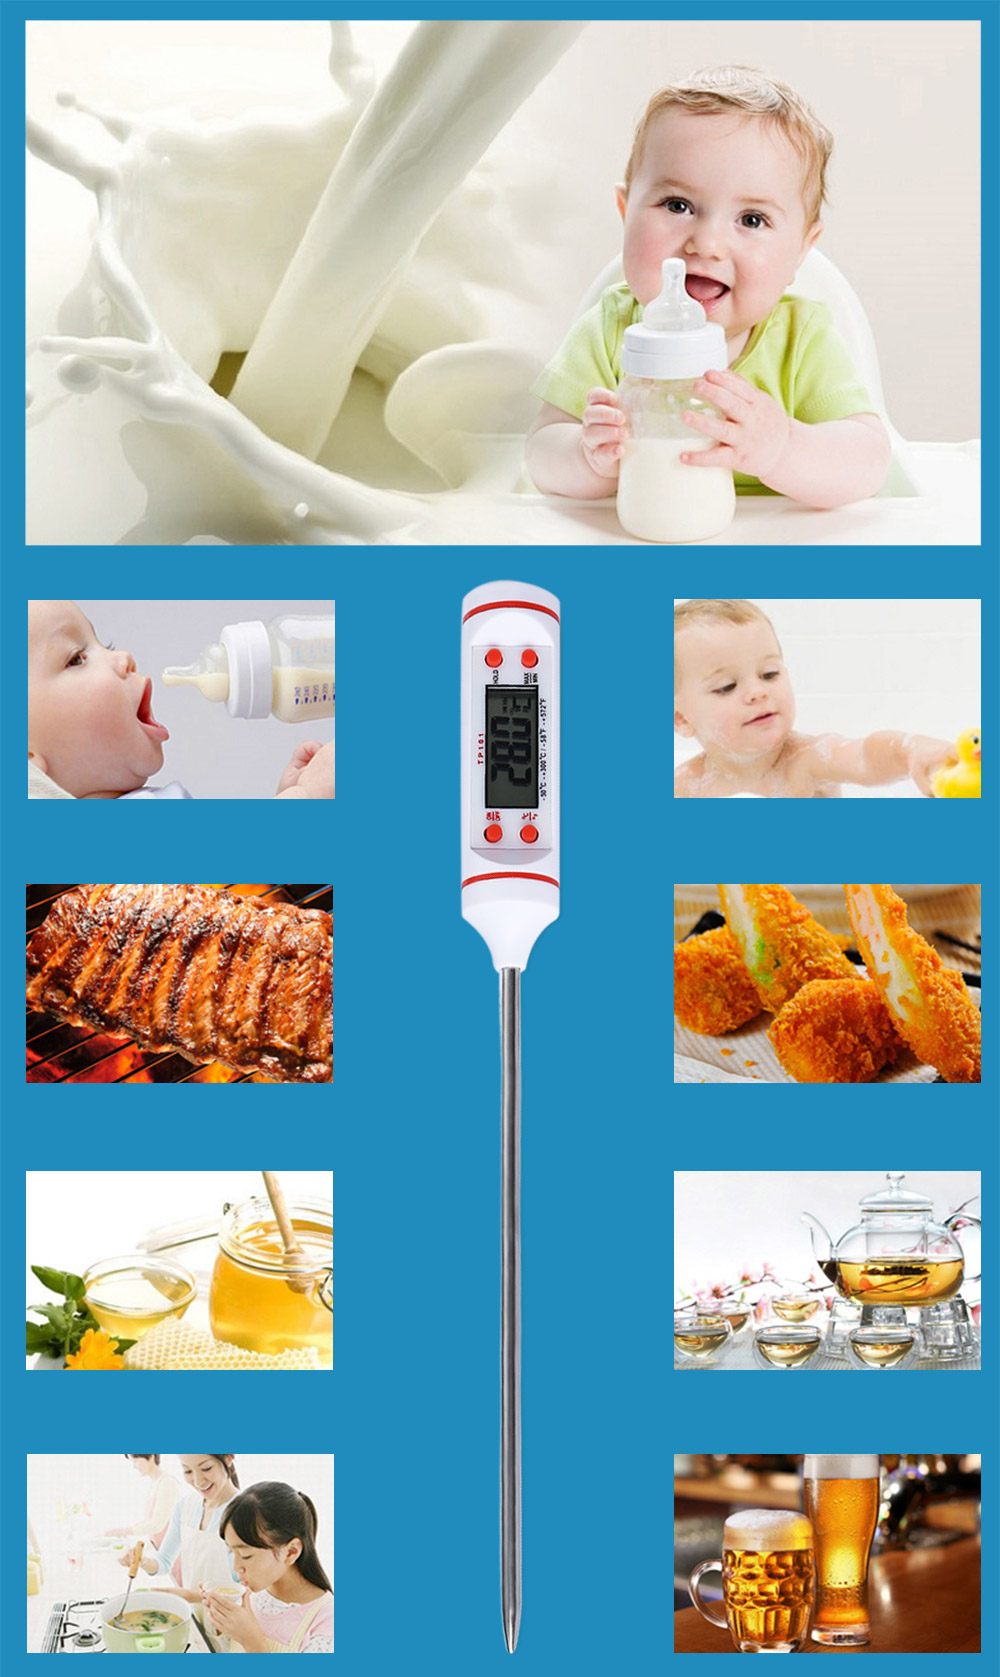 Pen-shape Embedded Digital Thermometer Kitchen Food Baking Barbecue Oil Monitoring Display Instant Read